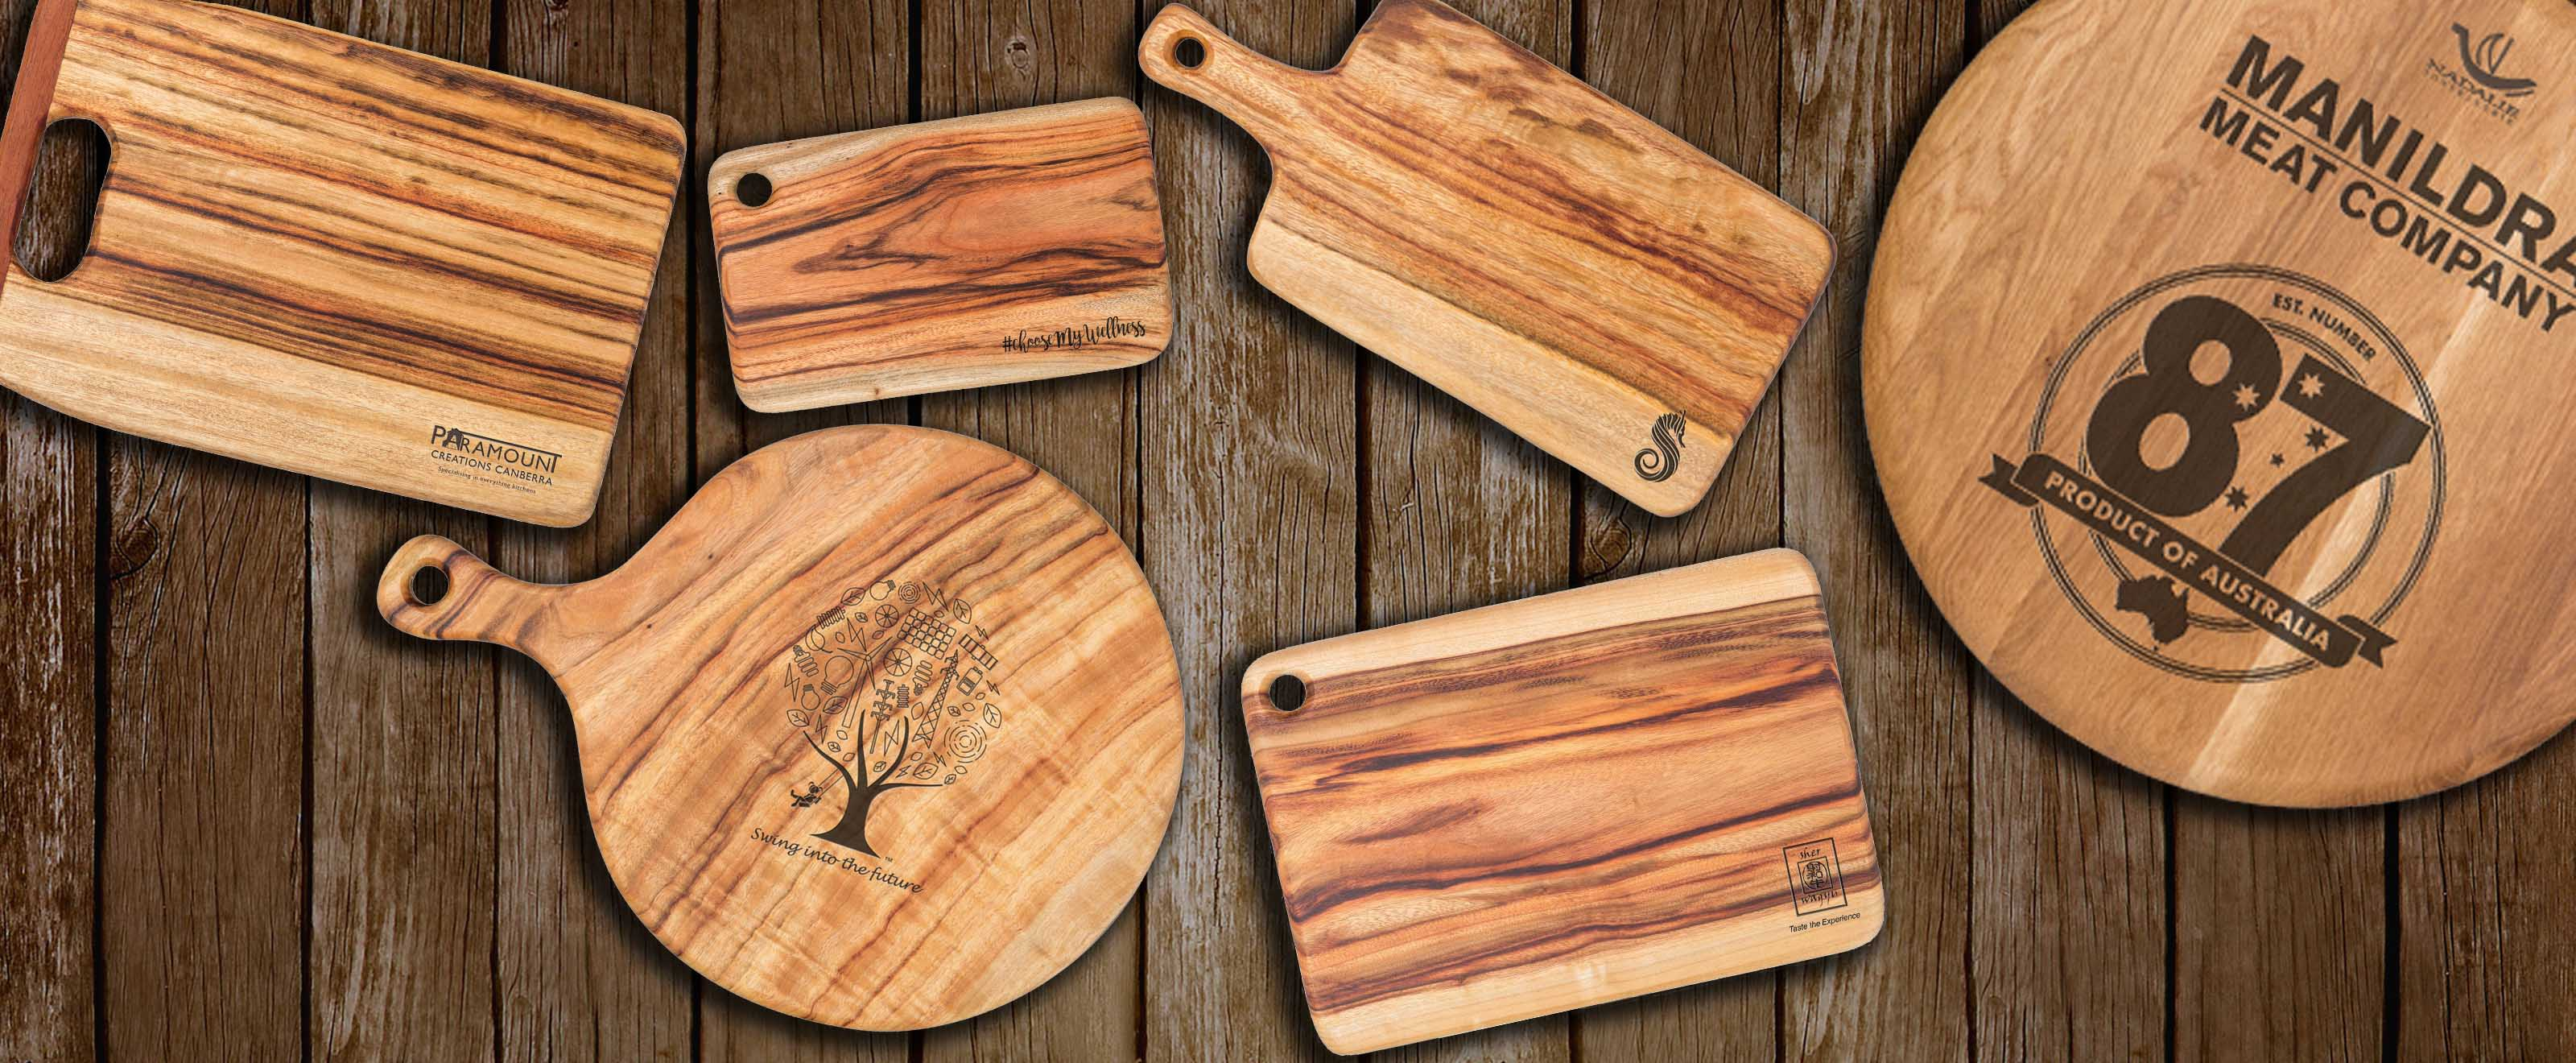 Byron bay chopping boards